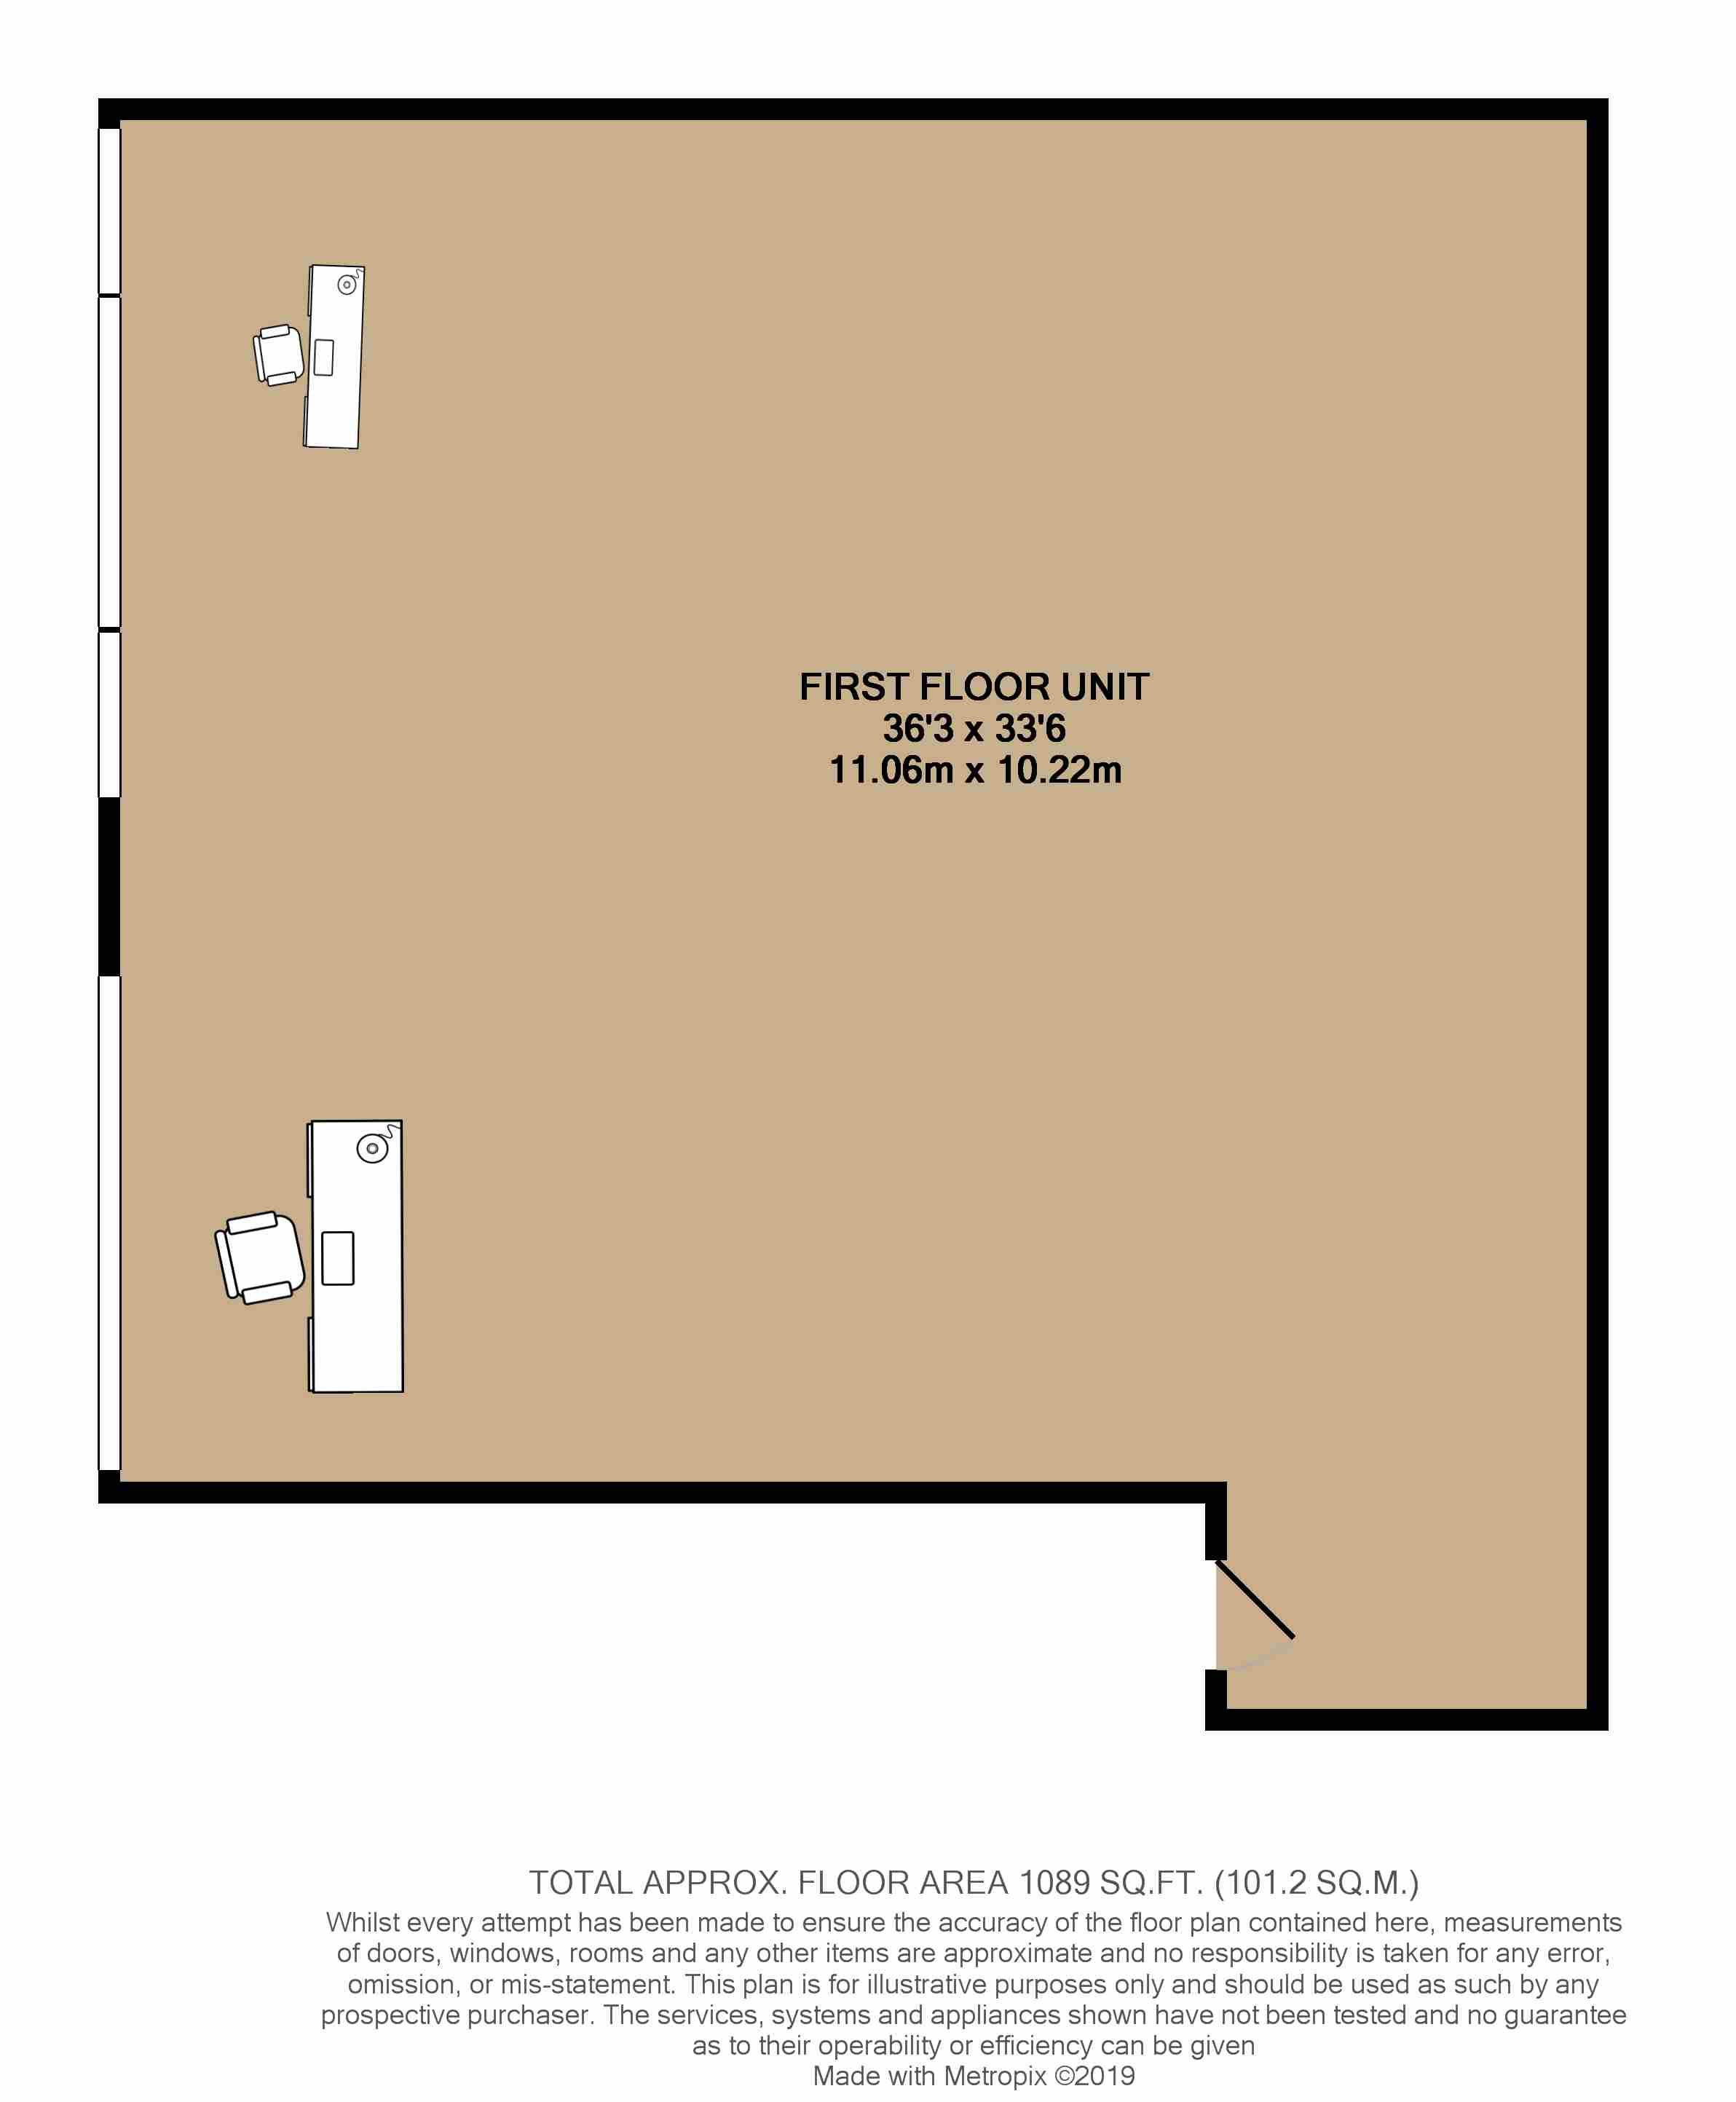 Floorplans For First Floor unit, UB5 5QQ